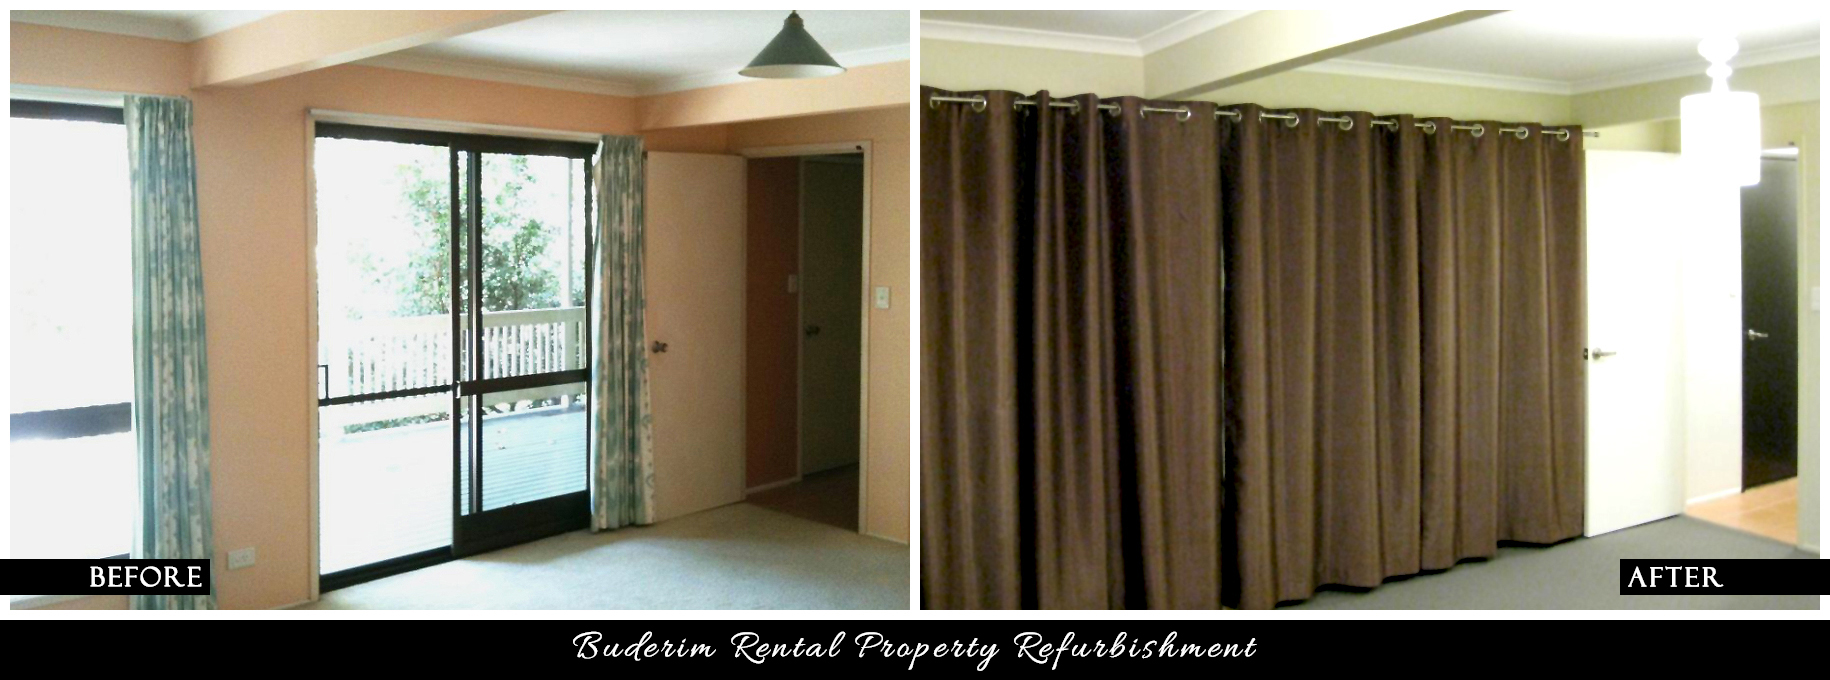 CANDY & CO. - BUDERIM RENTAL PROPERTY Before & After - Bedroom